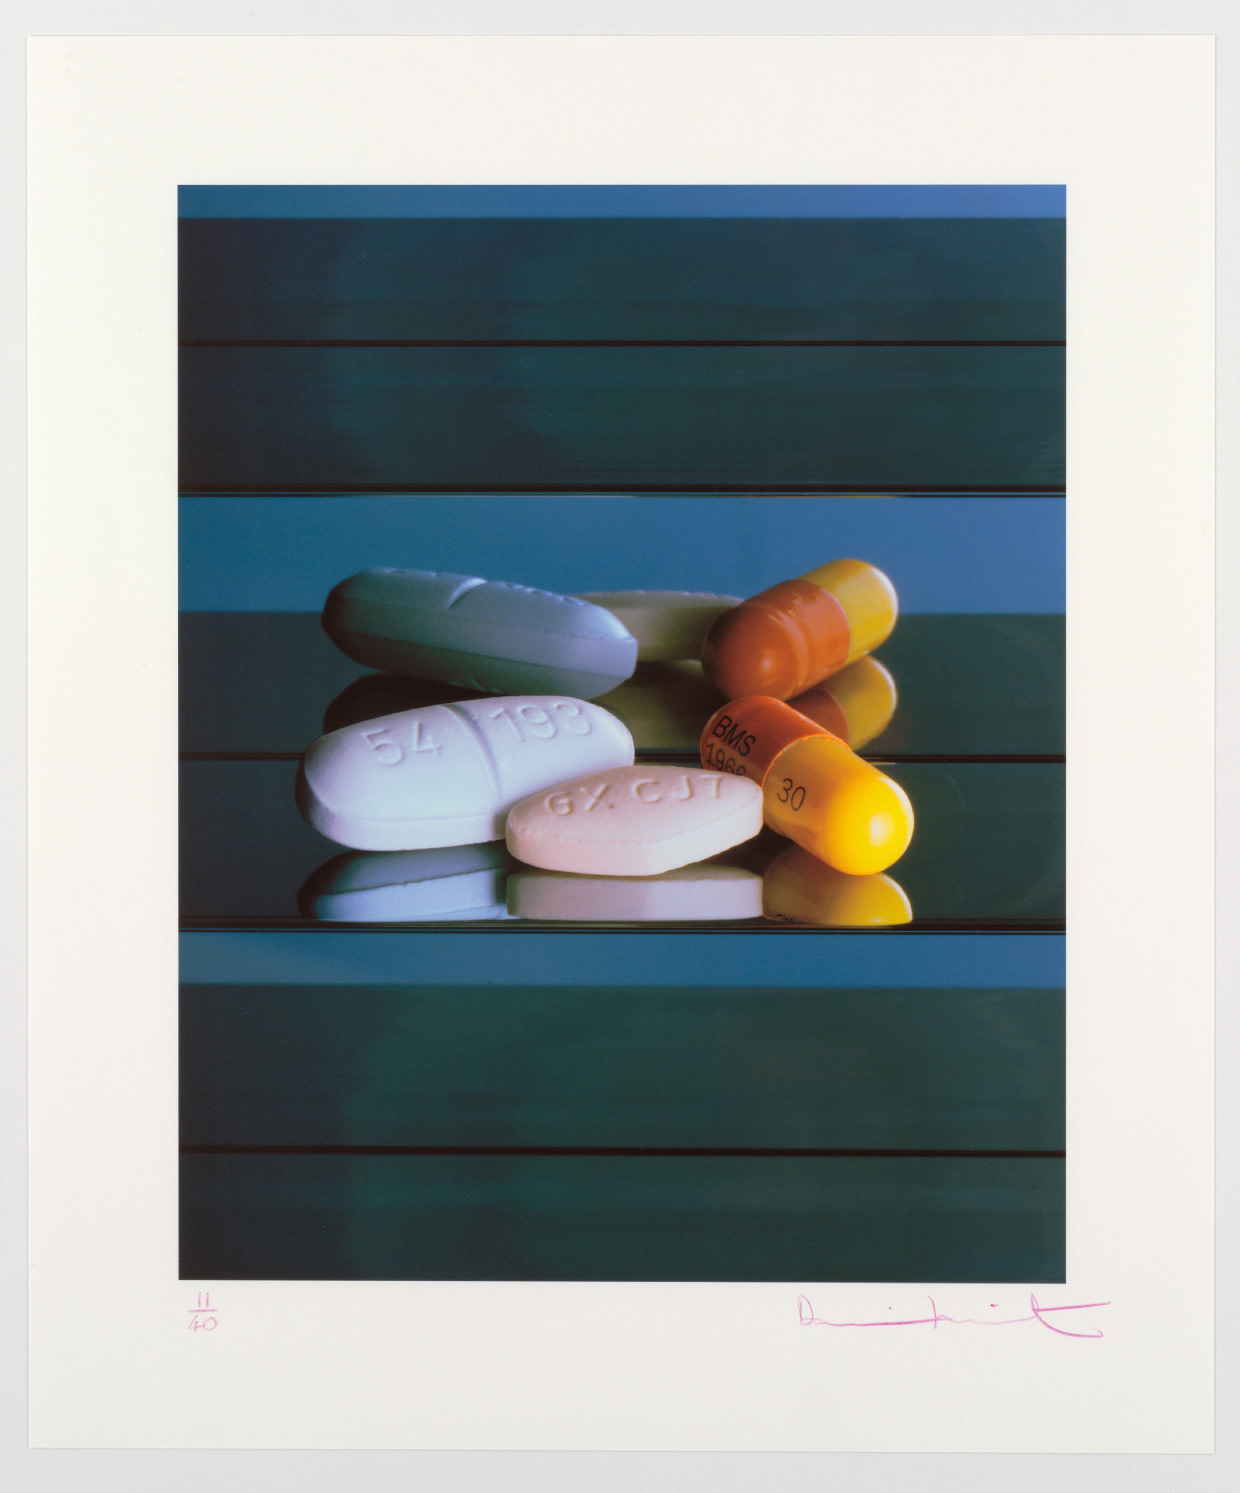 Damien Hirst: AIDS/HIV Drugs, 2008